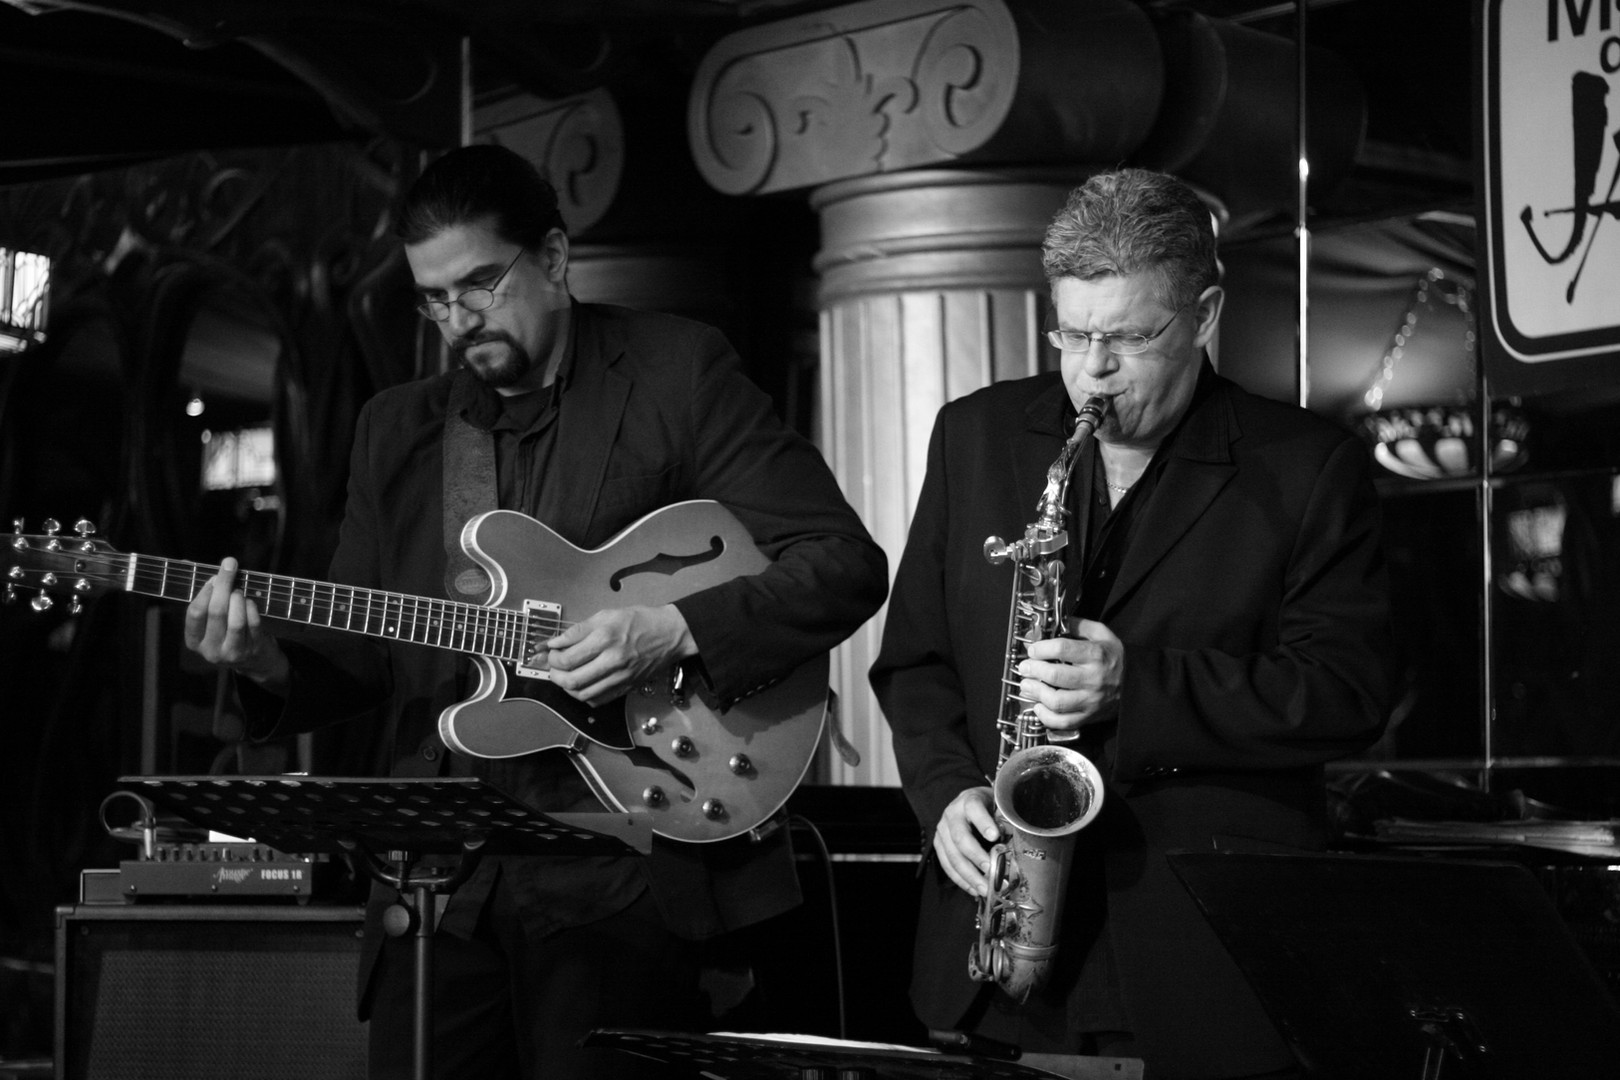 Live at House of Jazz